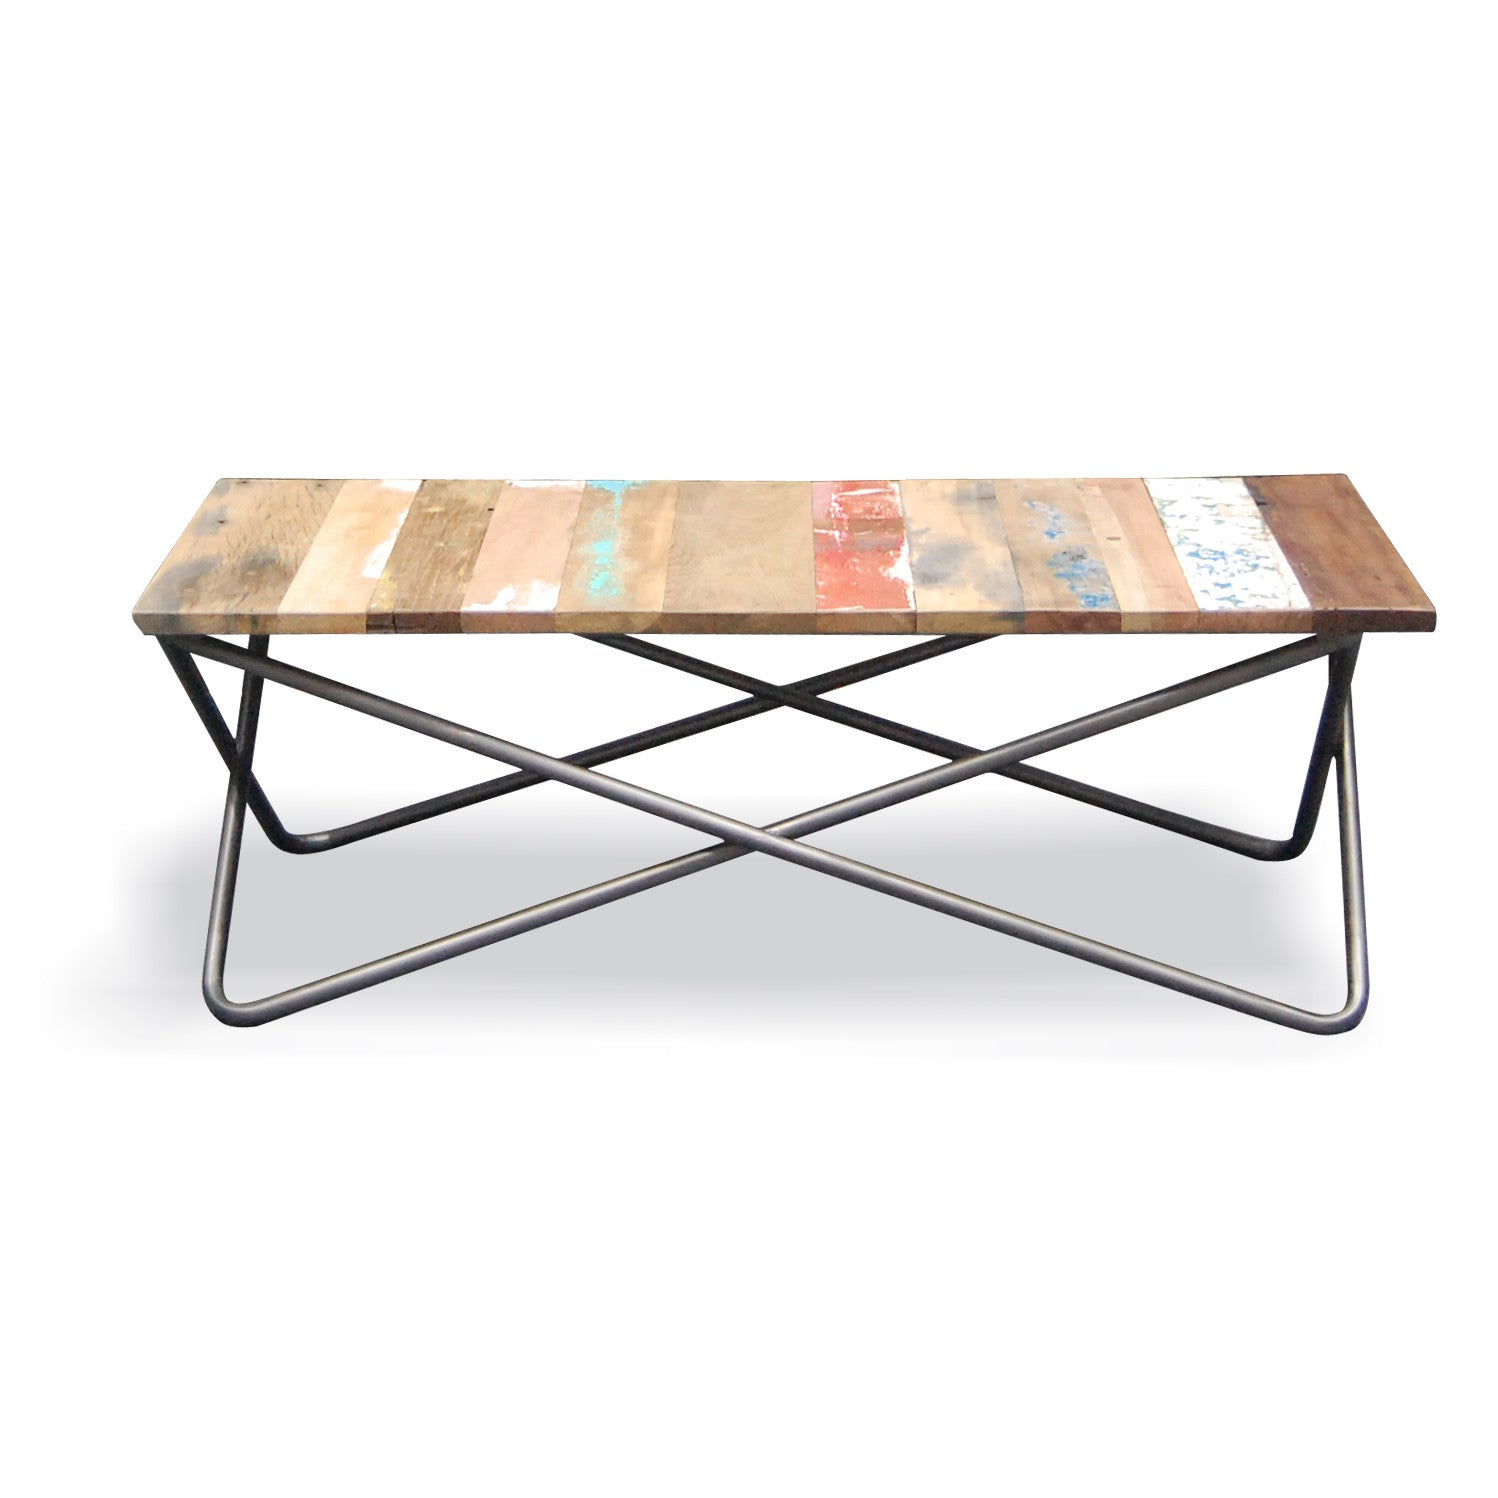 Vintage Industrial Criss Cross Coffee Table – Shropshire Design